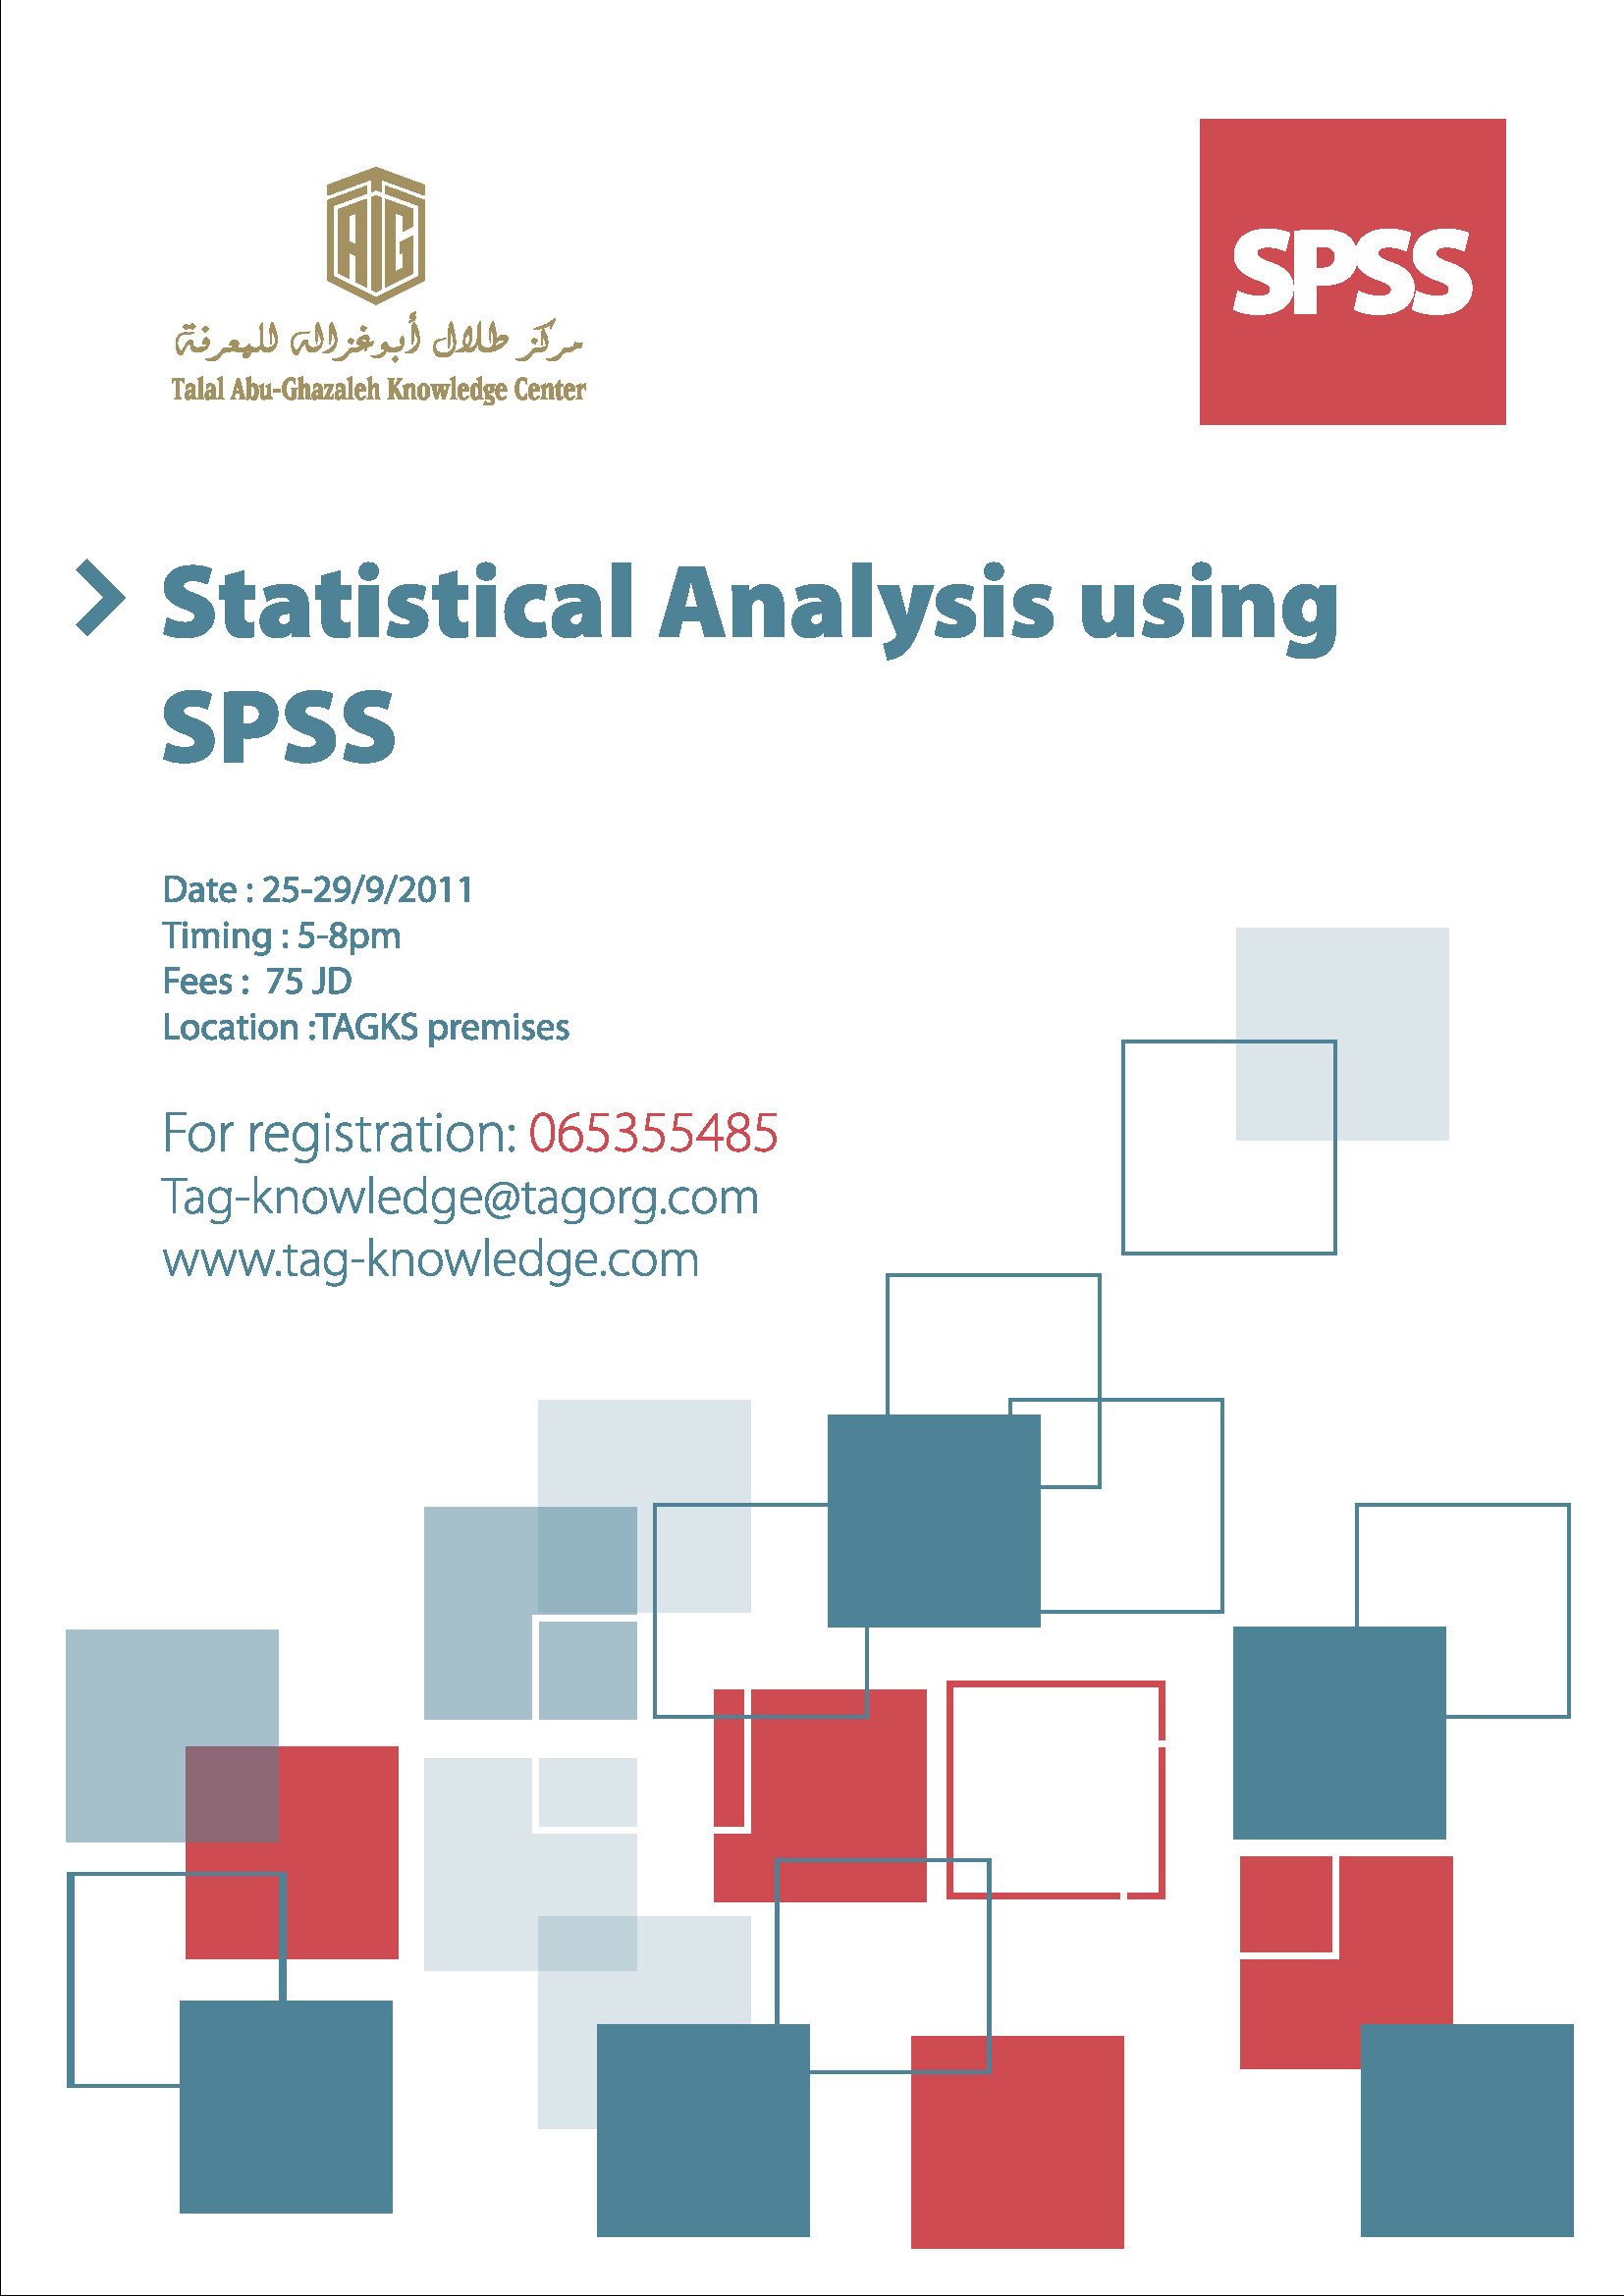 The Best SPSS Coursework Help Online